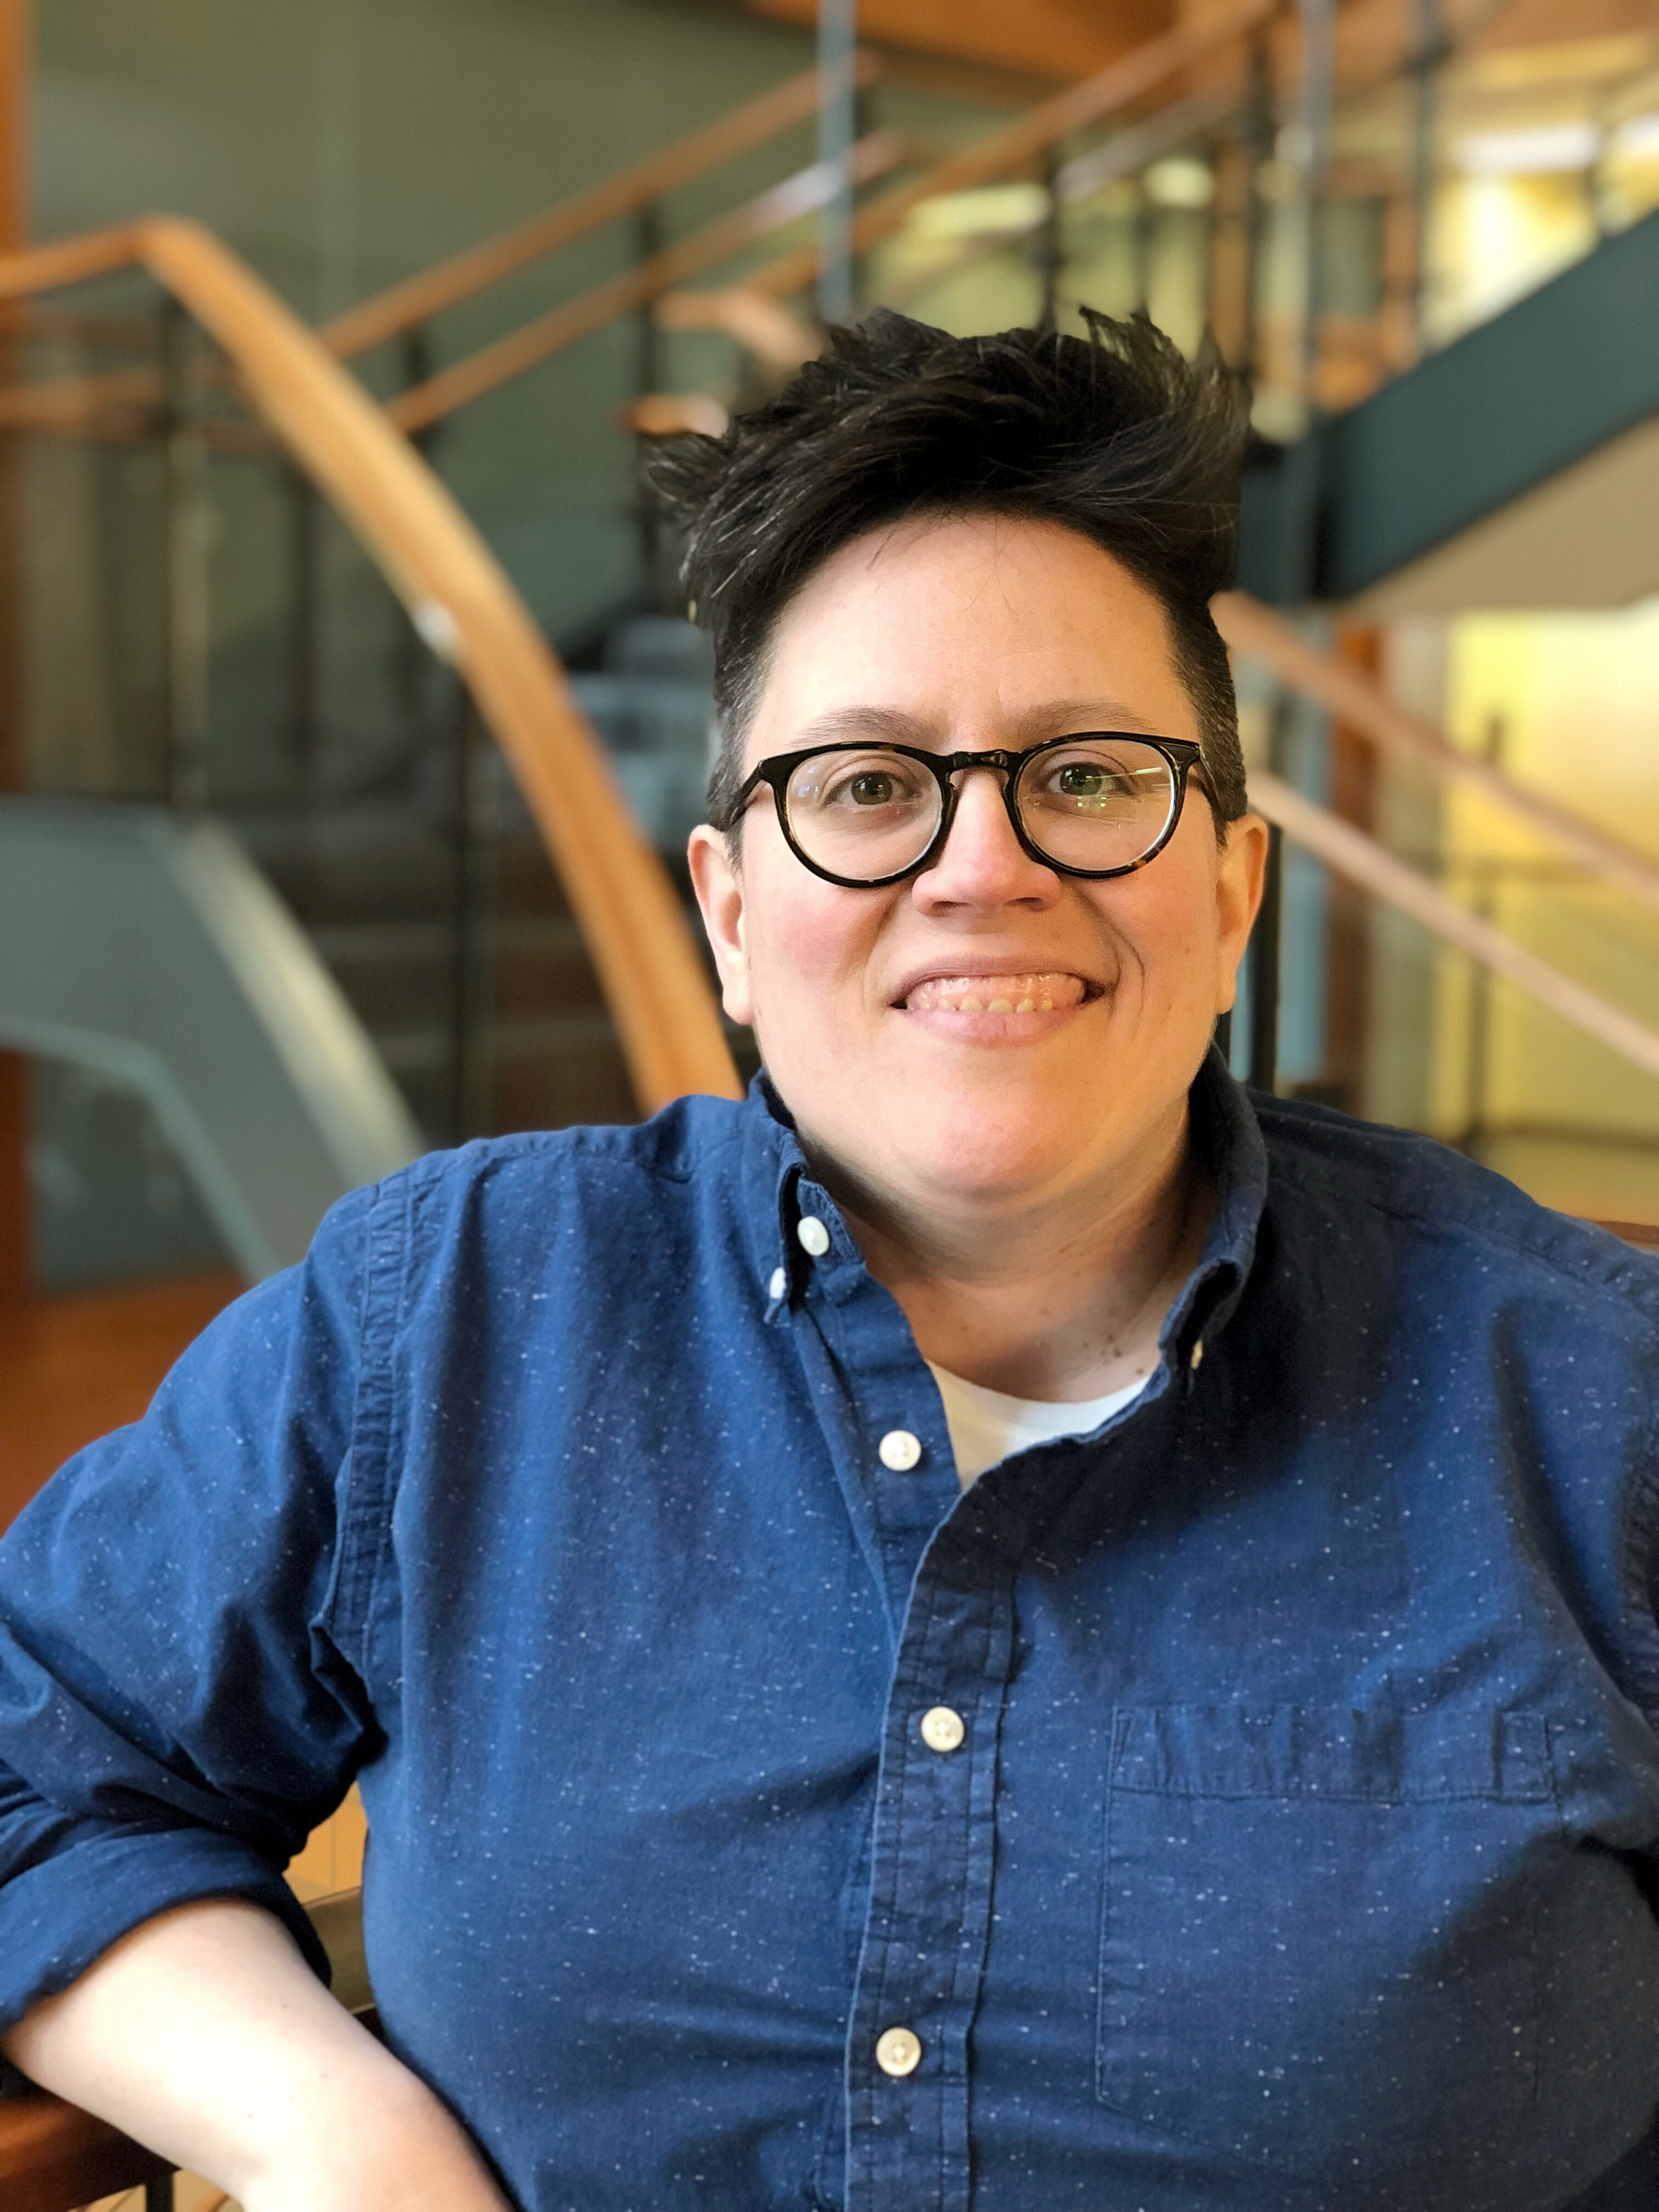 Jessica Winderweedle Lead Pastor - Jess has served as pastor at Kingston UMC since 2016, but she and her wife Melissa have called this community their spiritual home since 2012. Here at Kingston UMC, Jess invests in developing leaders and cultivating the worship life of our congregation. A graduate of Oklahoma Baptist University and Princeton Theological Seminary, Jess also received a wealth of education in business management and community involvement during her decade-long career opening and operating coffee shops.When she wasn't caffeinating the masses, Jess popped up in all sorts of ministry roles, from church pianist to youth ministry associate to small group leader. Since early 2014, she has served as the executive director of Feed Truck Ministries, Inc., the organization that operates KUMC's primary outreach vehicle, The Feed Truck (www.thefeedtruck.org).Jess loves exploring cities, wearing space cat t-shirts, and drinking copious amounts of iced coffee.